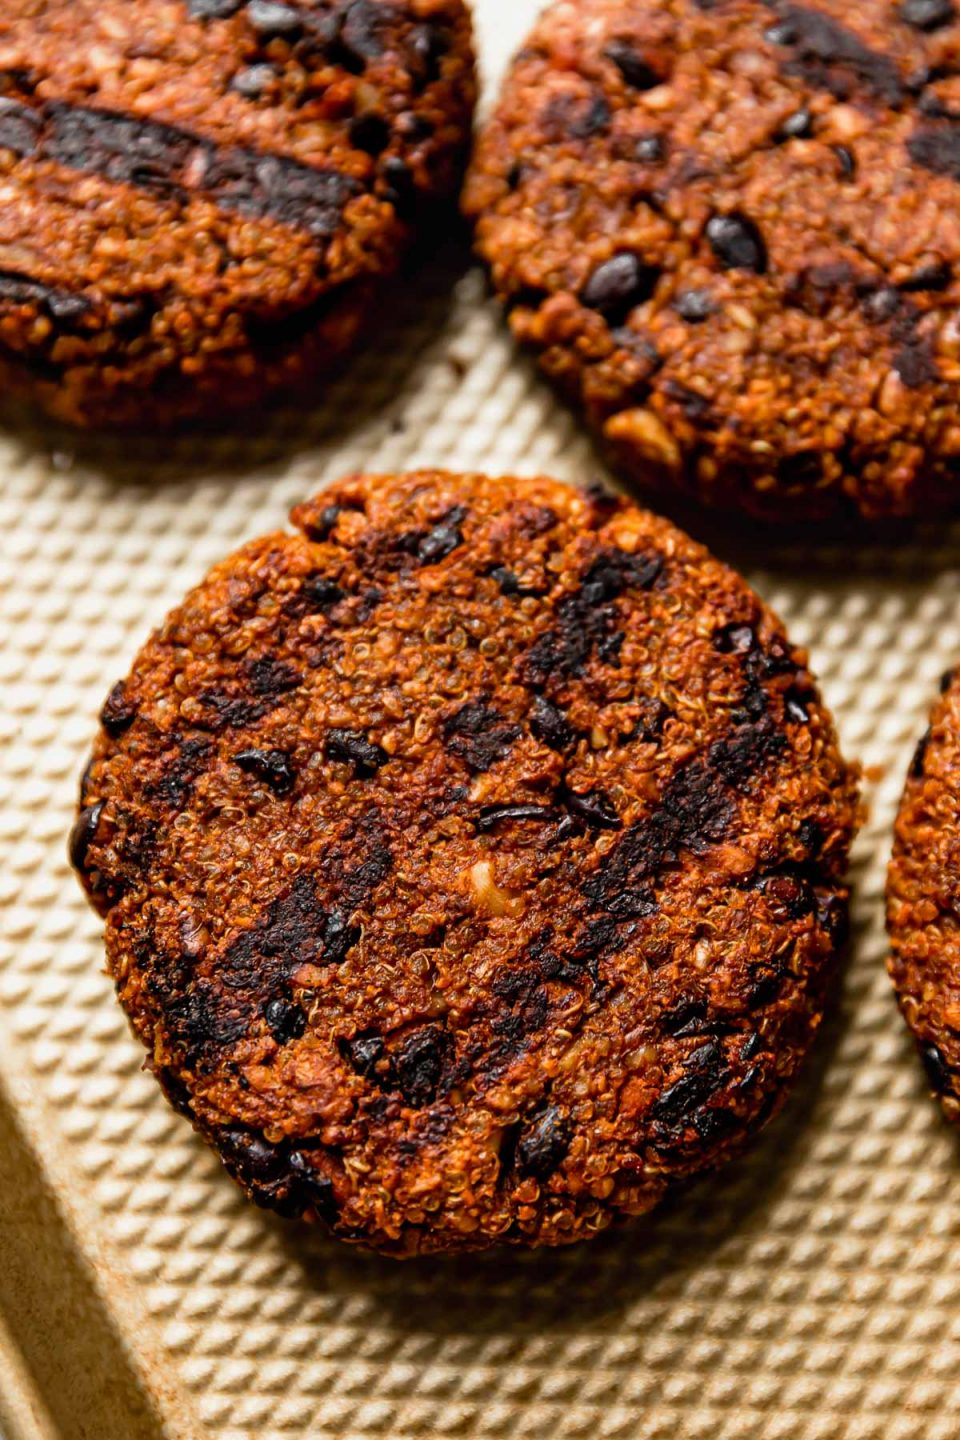 Grilled black bean burgers on a small gold baking sheet.